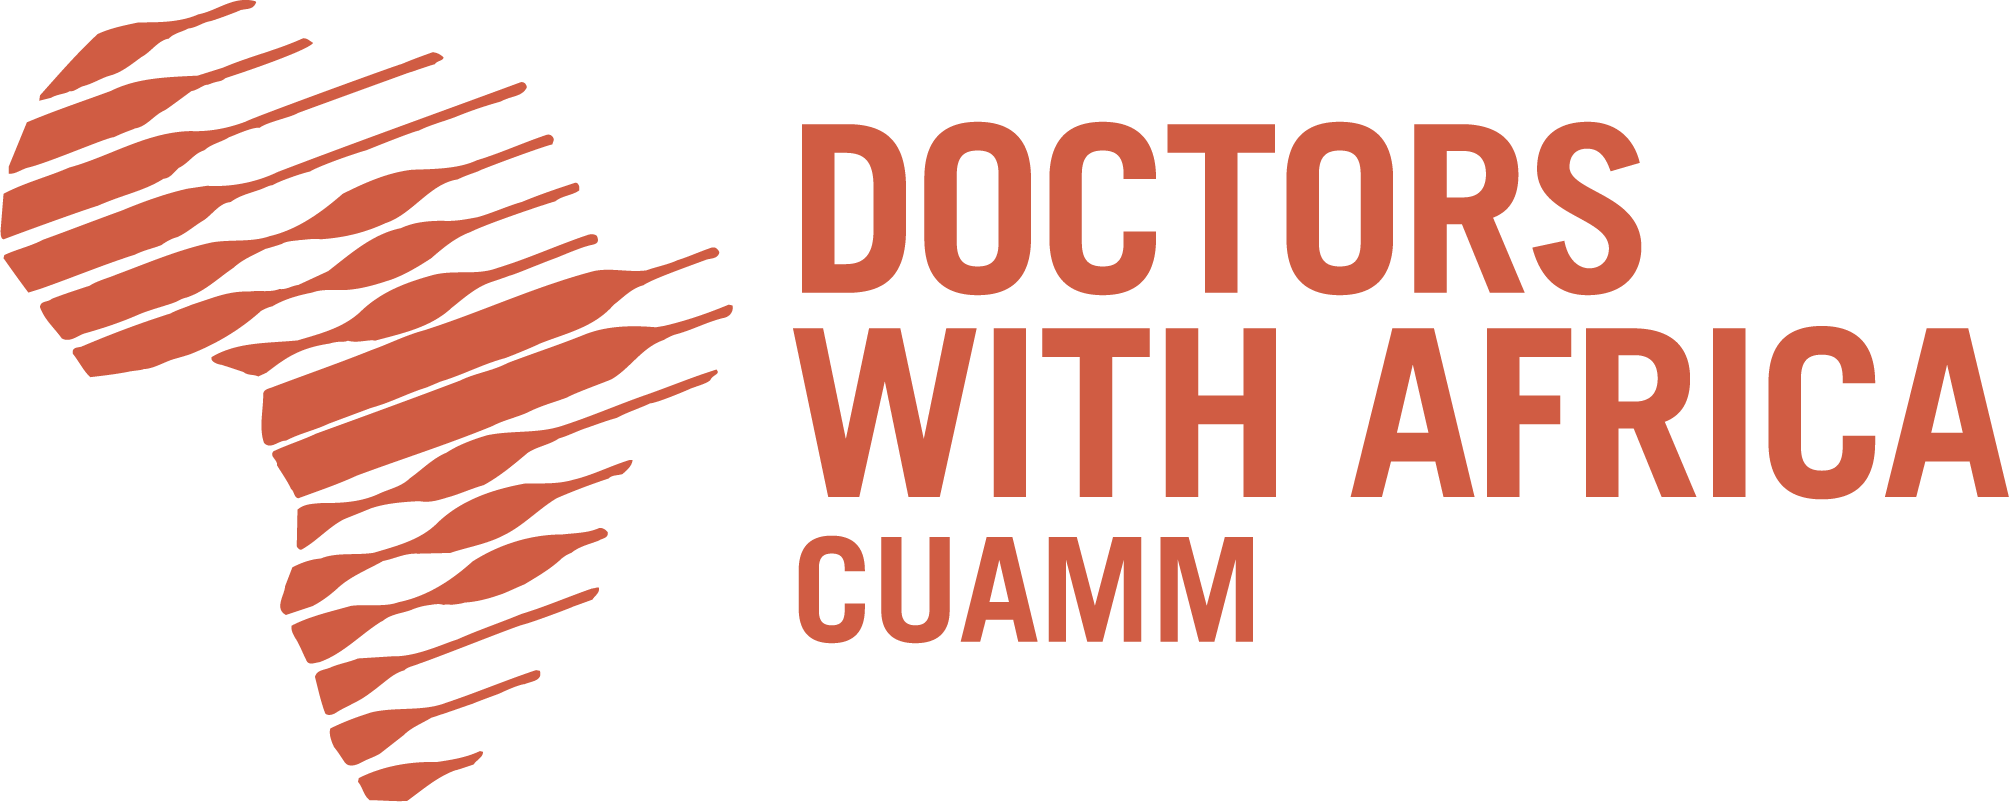 Home - Doctors with Africa CUAMM